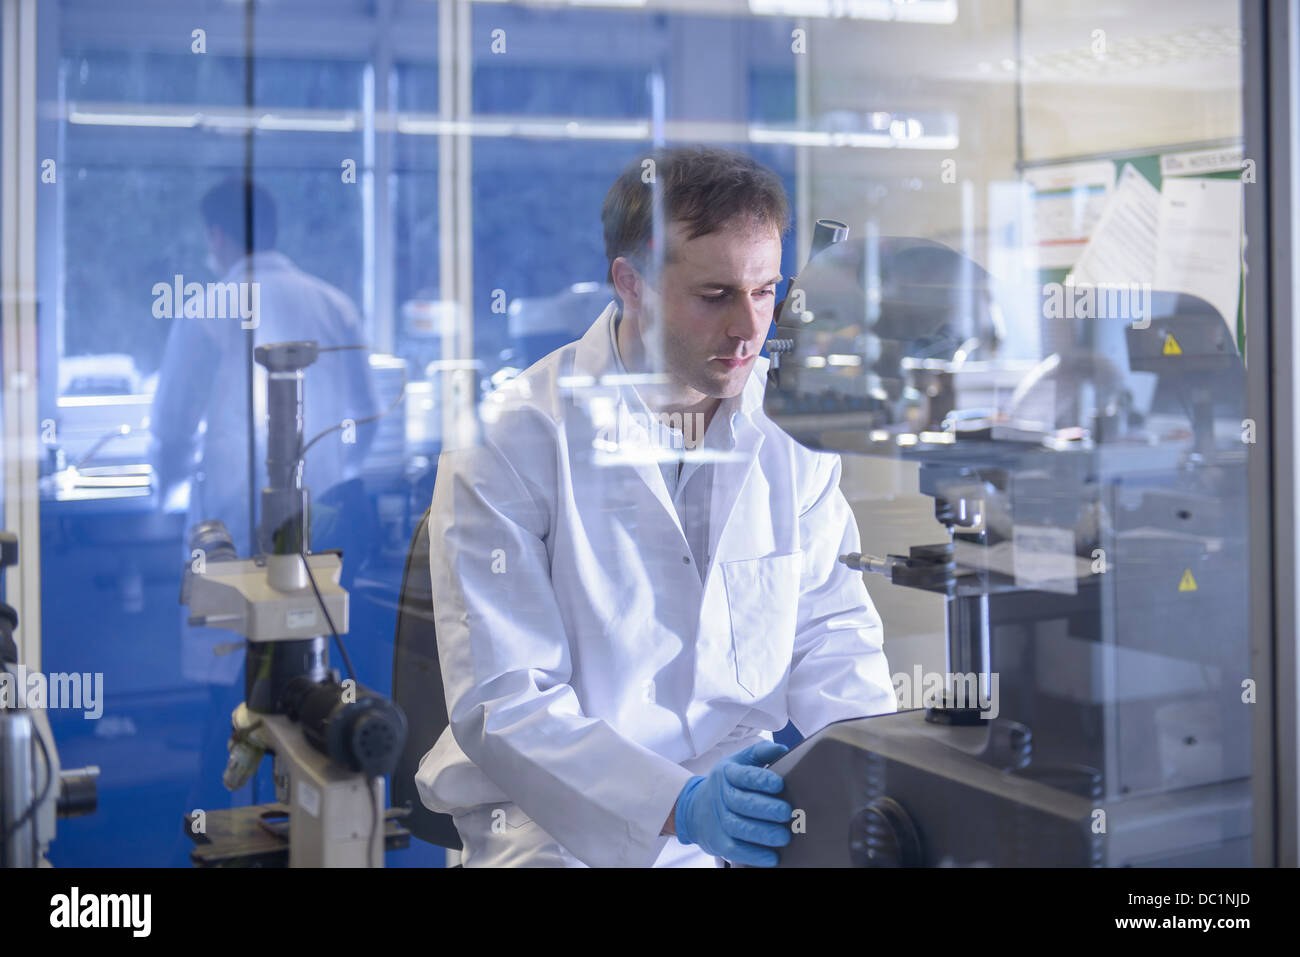 Scientist working on specialist equipment in laboratory - Stock Image